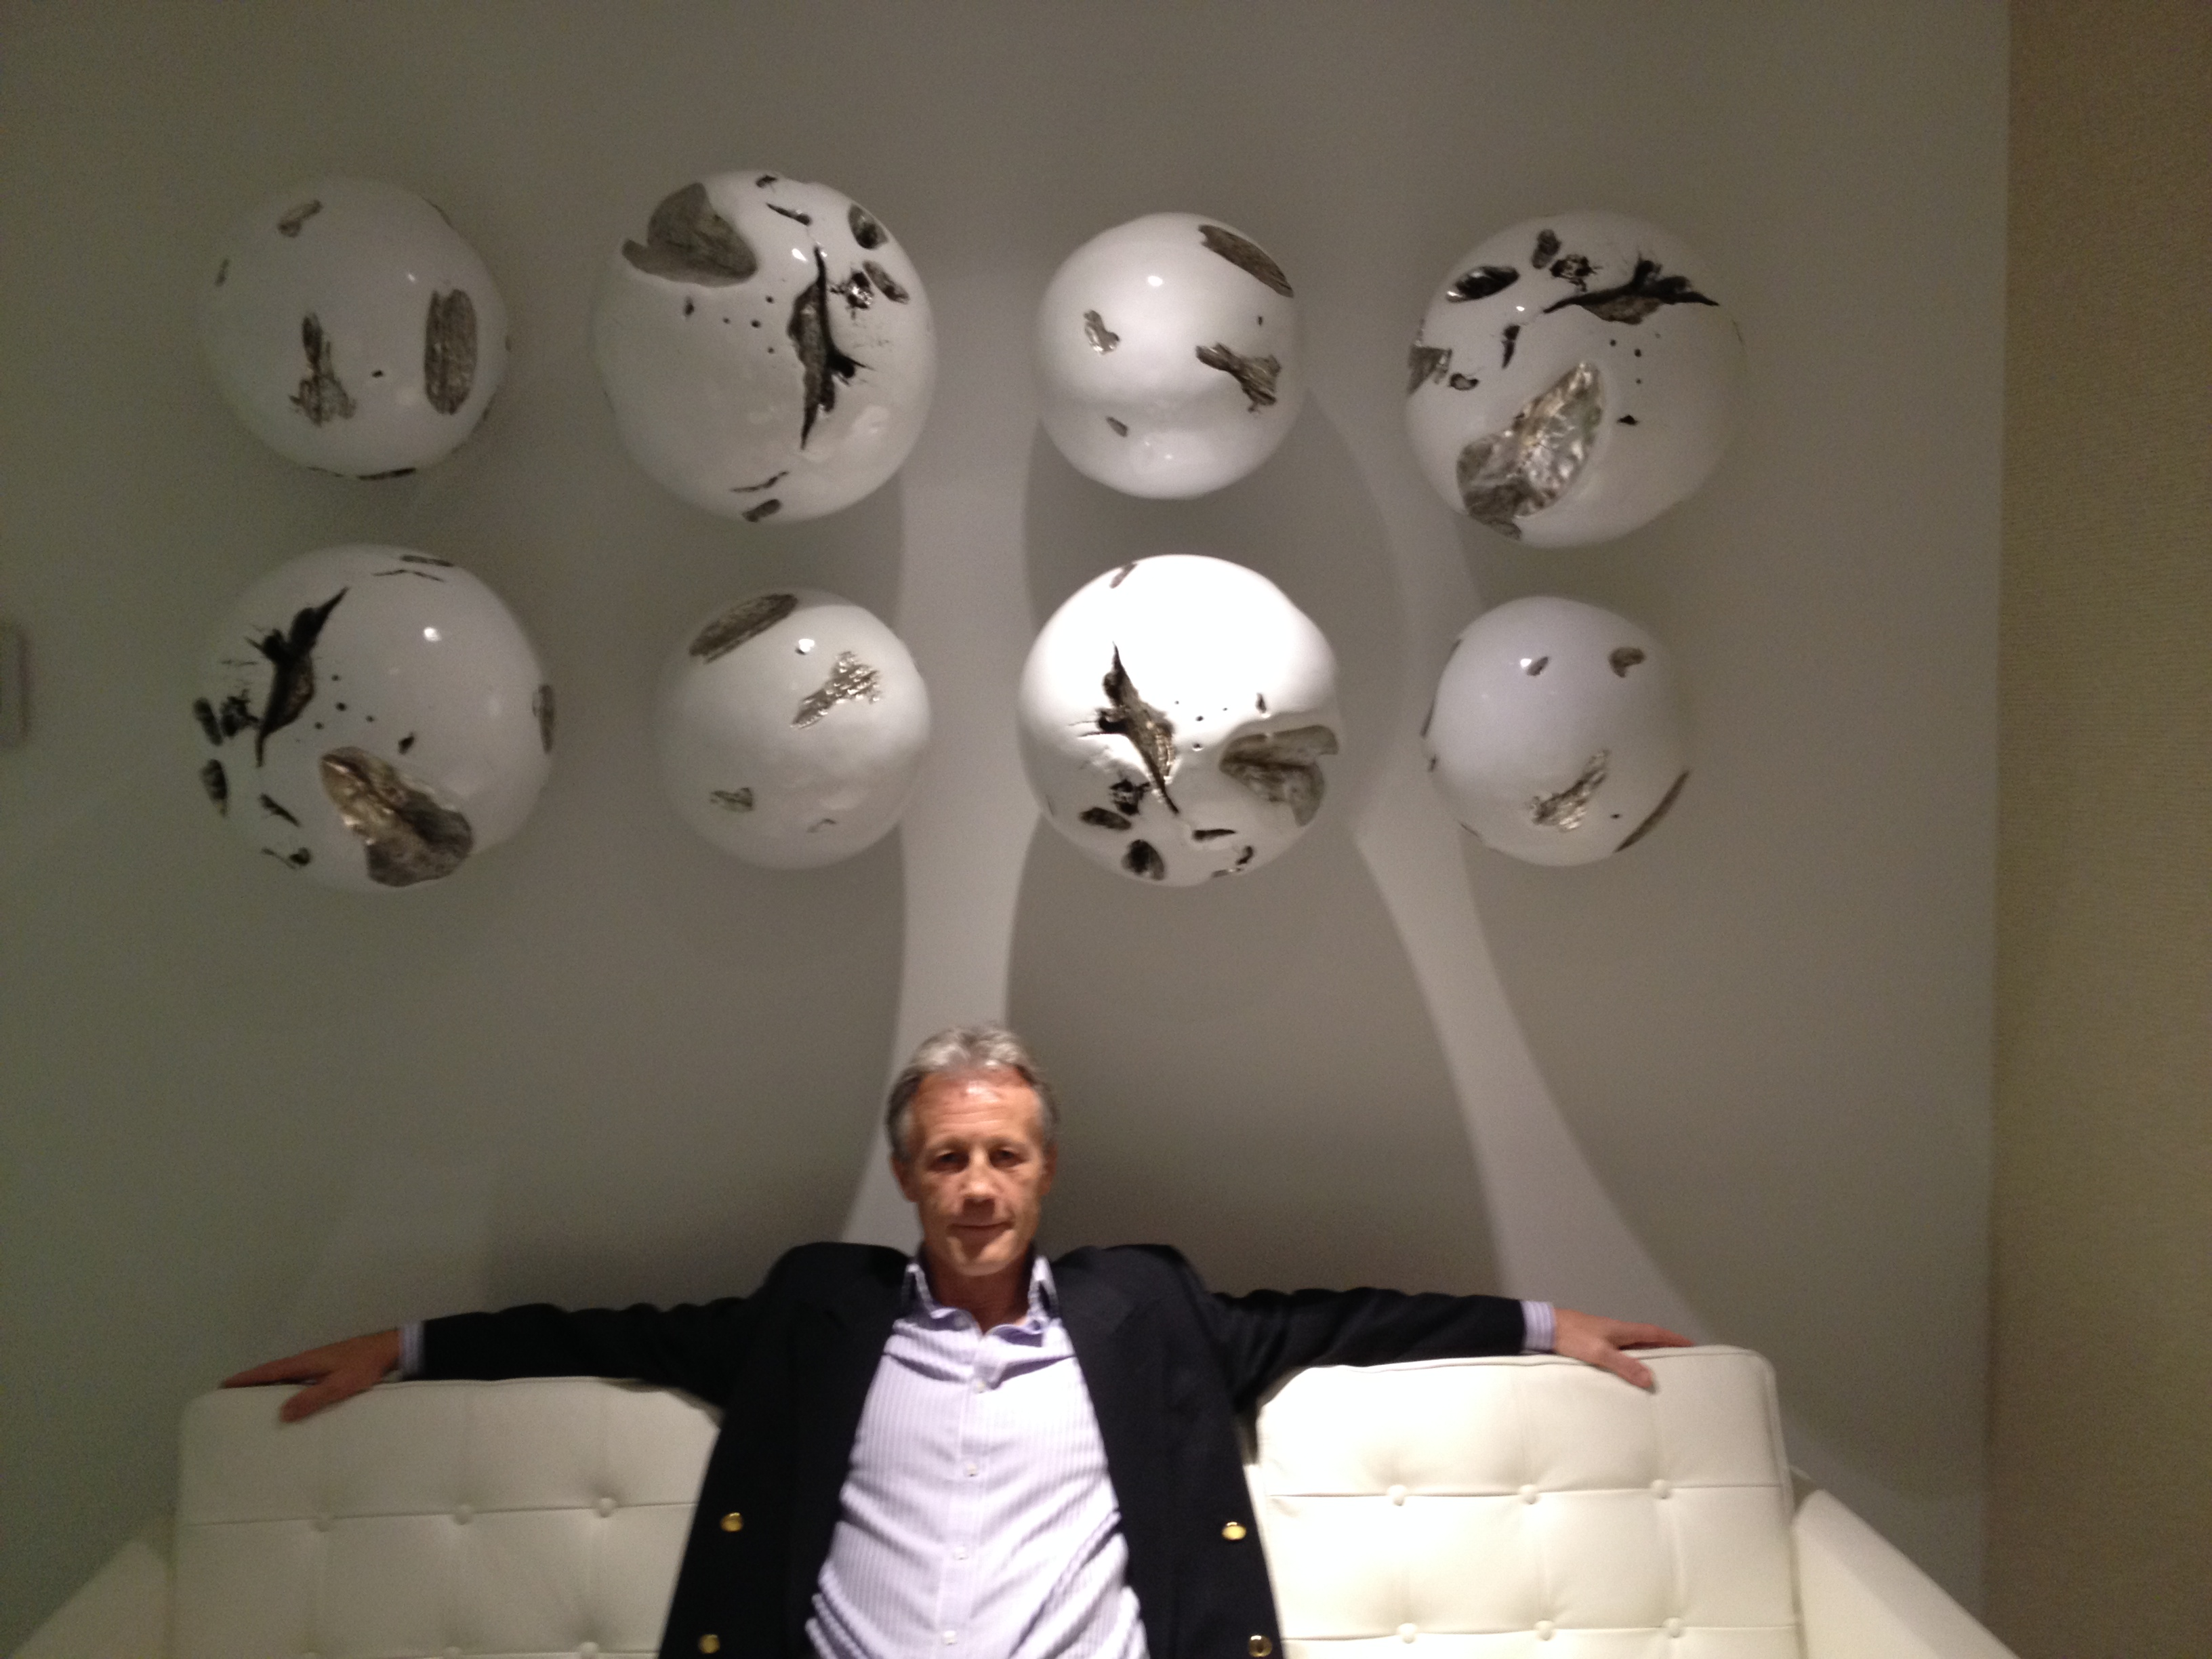 PR Smith, author, sitting on couch with footballs on the wall